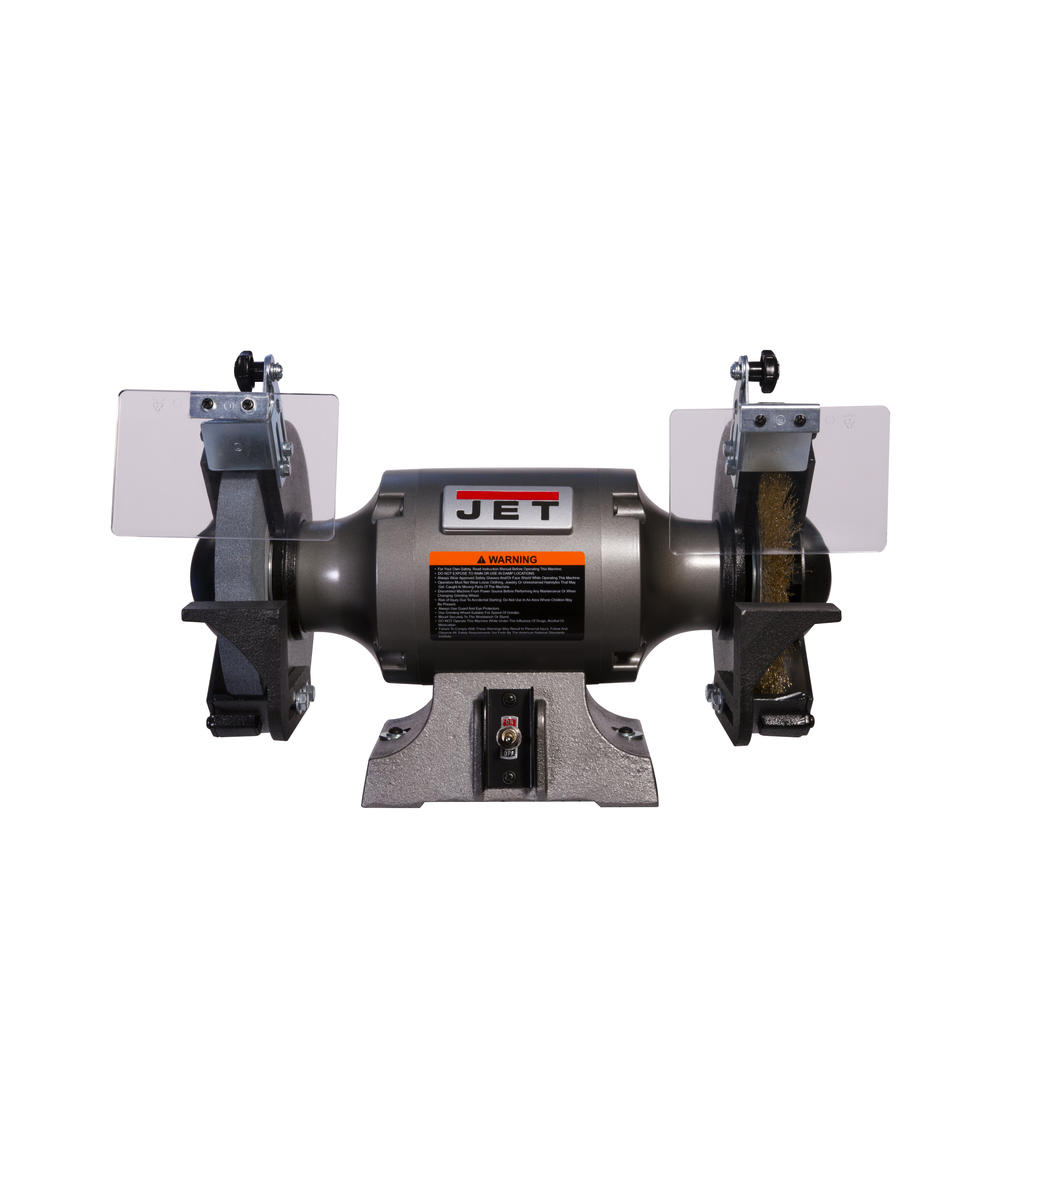 JBG-8W Shop Grinder with Grinding Wheel and Wire Wheel